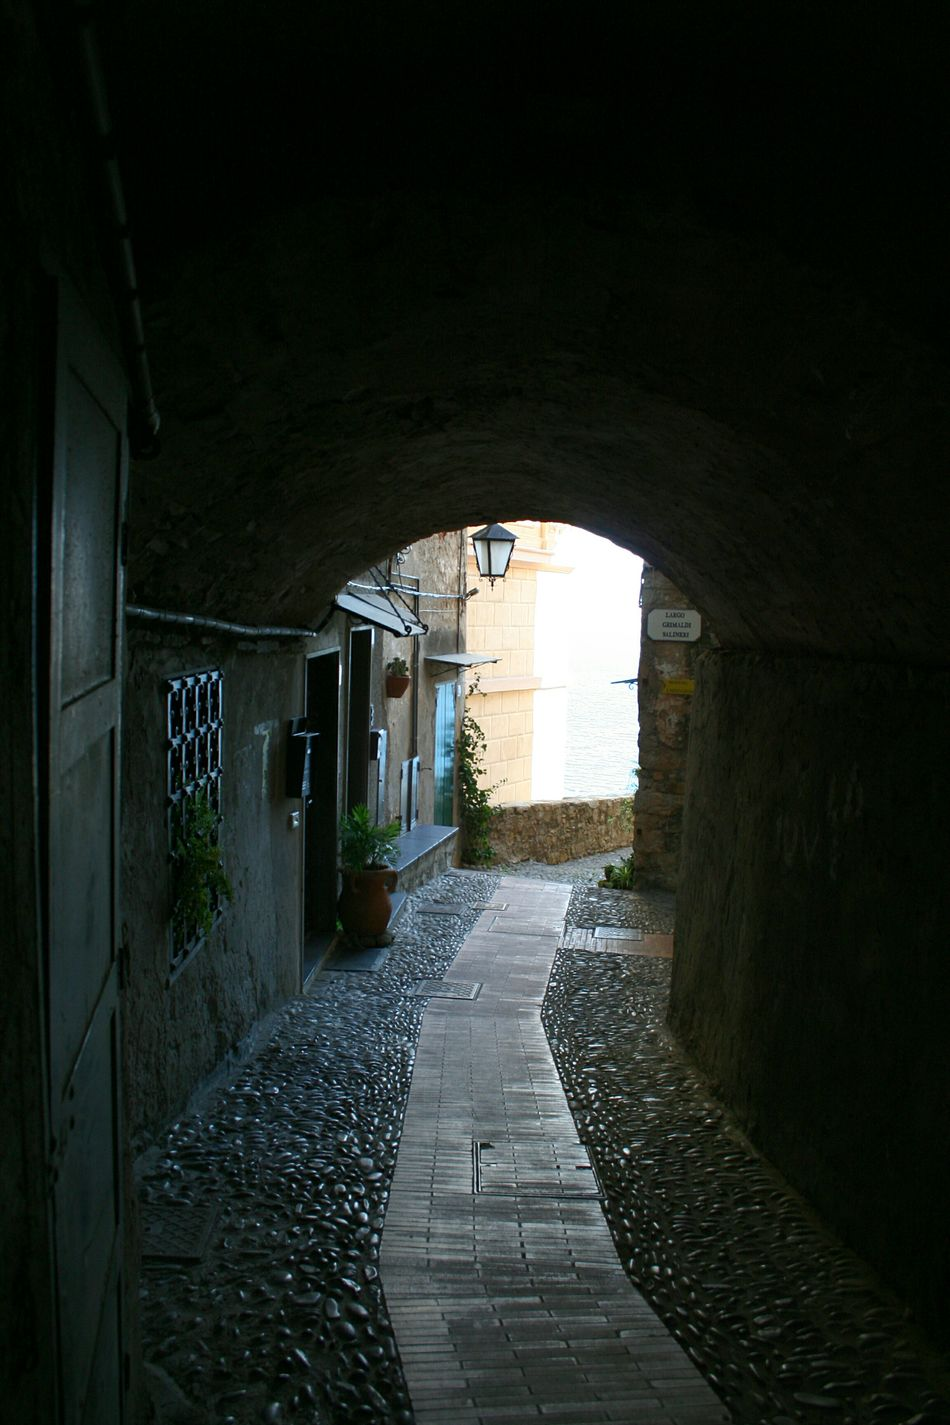 The Way Forward Tunnel Indoors  Arch Built Structure No People Architecture Archway Day Architectural Detail Liguria,Italy Old Buildings Architectural Details Italian Village  Travel Destinations Vicolo Del Paese Narrow Street Old Street Mediterranean Village Italian Village